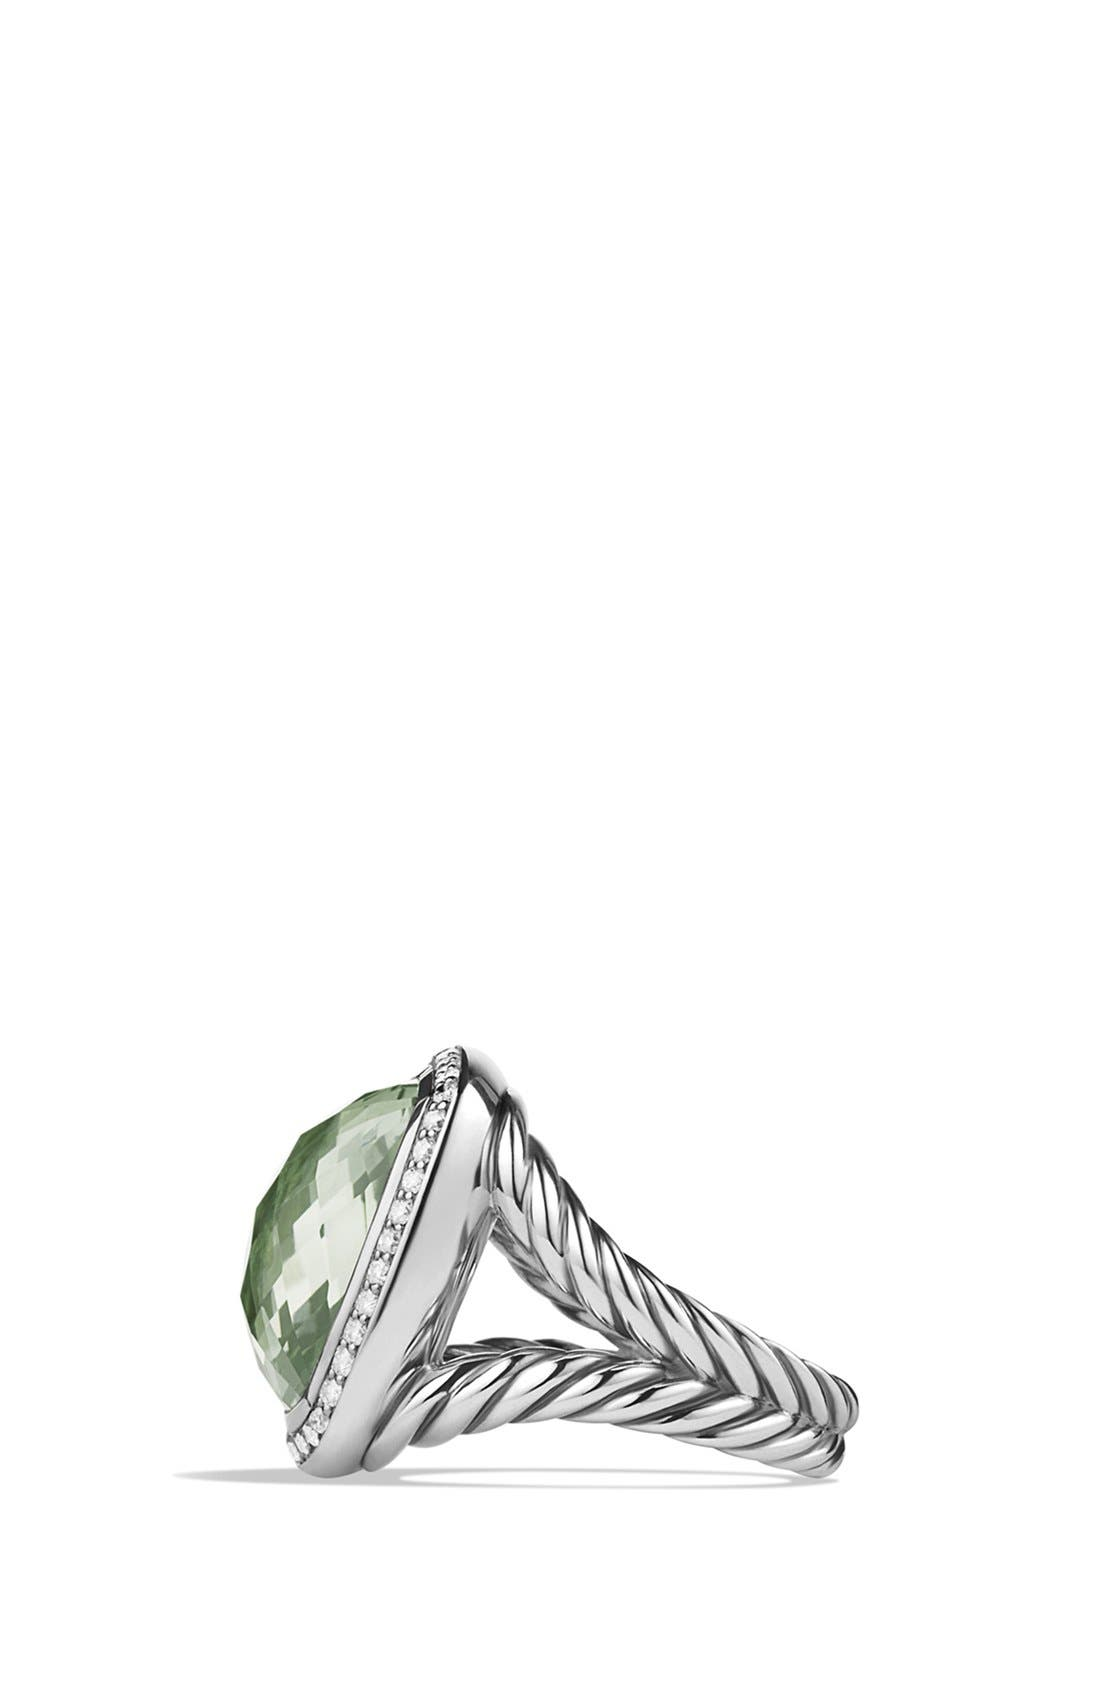 DAVID YURMAN,                             'Albion' Ring with Diamonds,                             Alternate thumbnail 4, color,                             PRASIOLITE